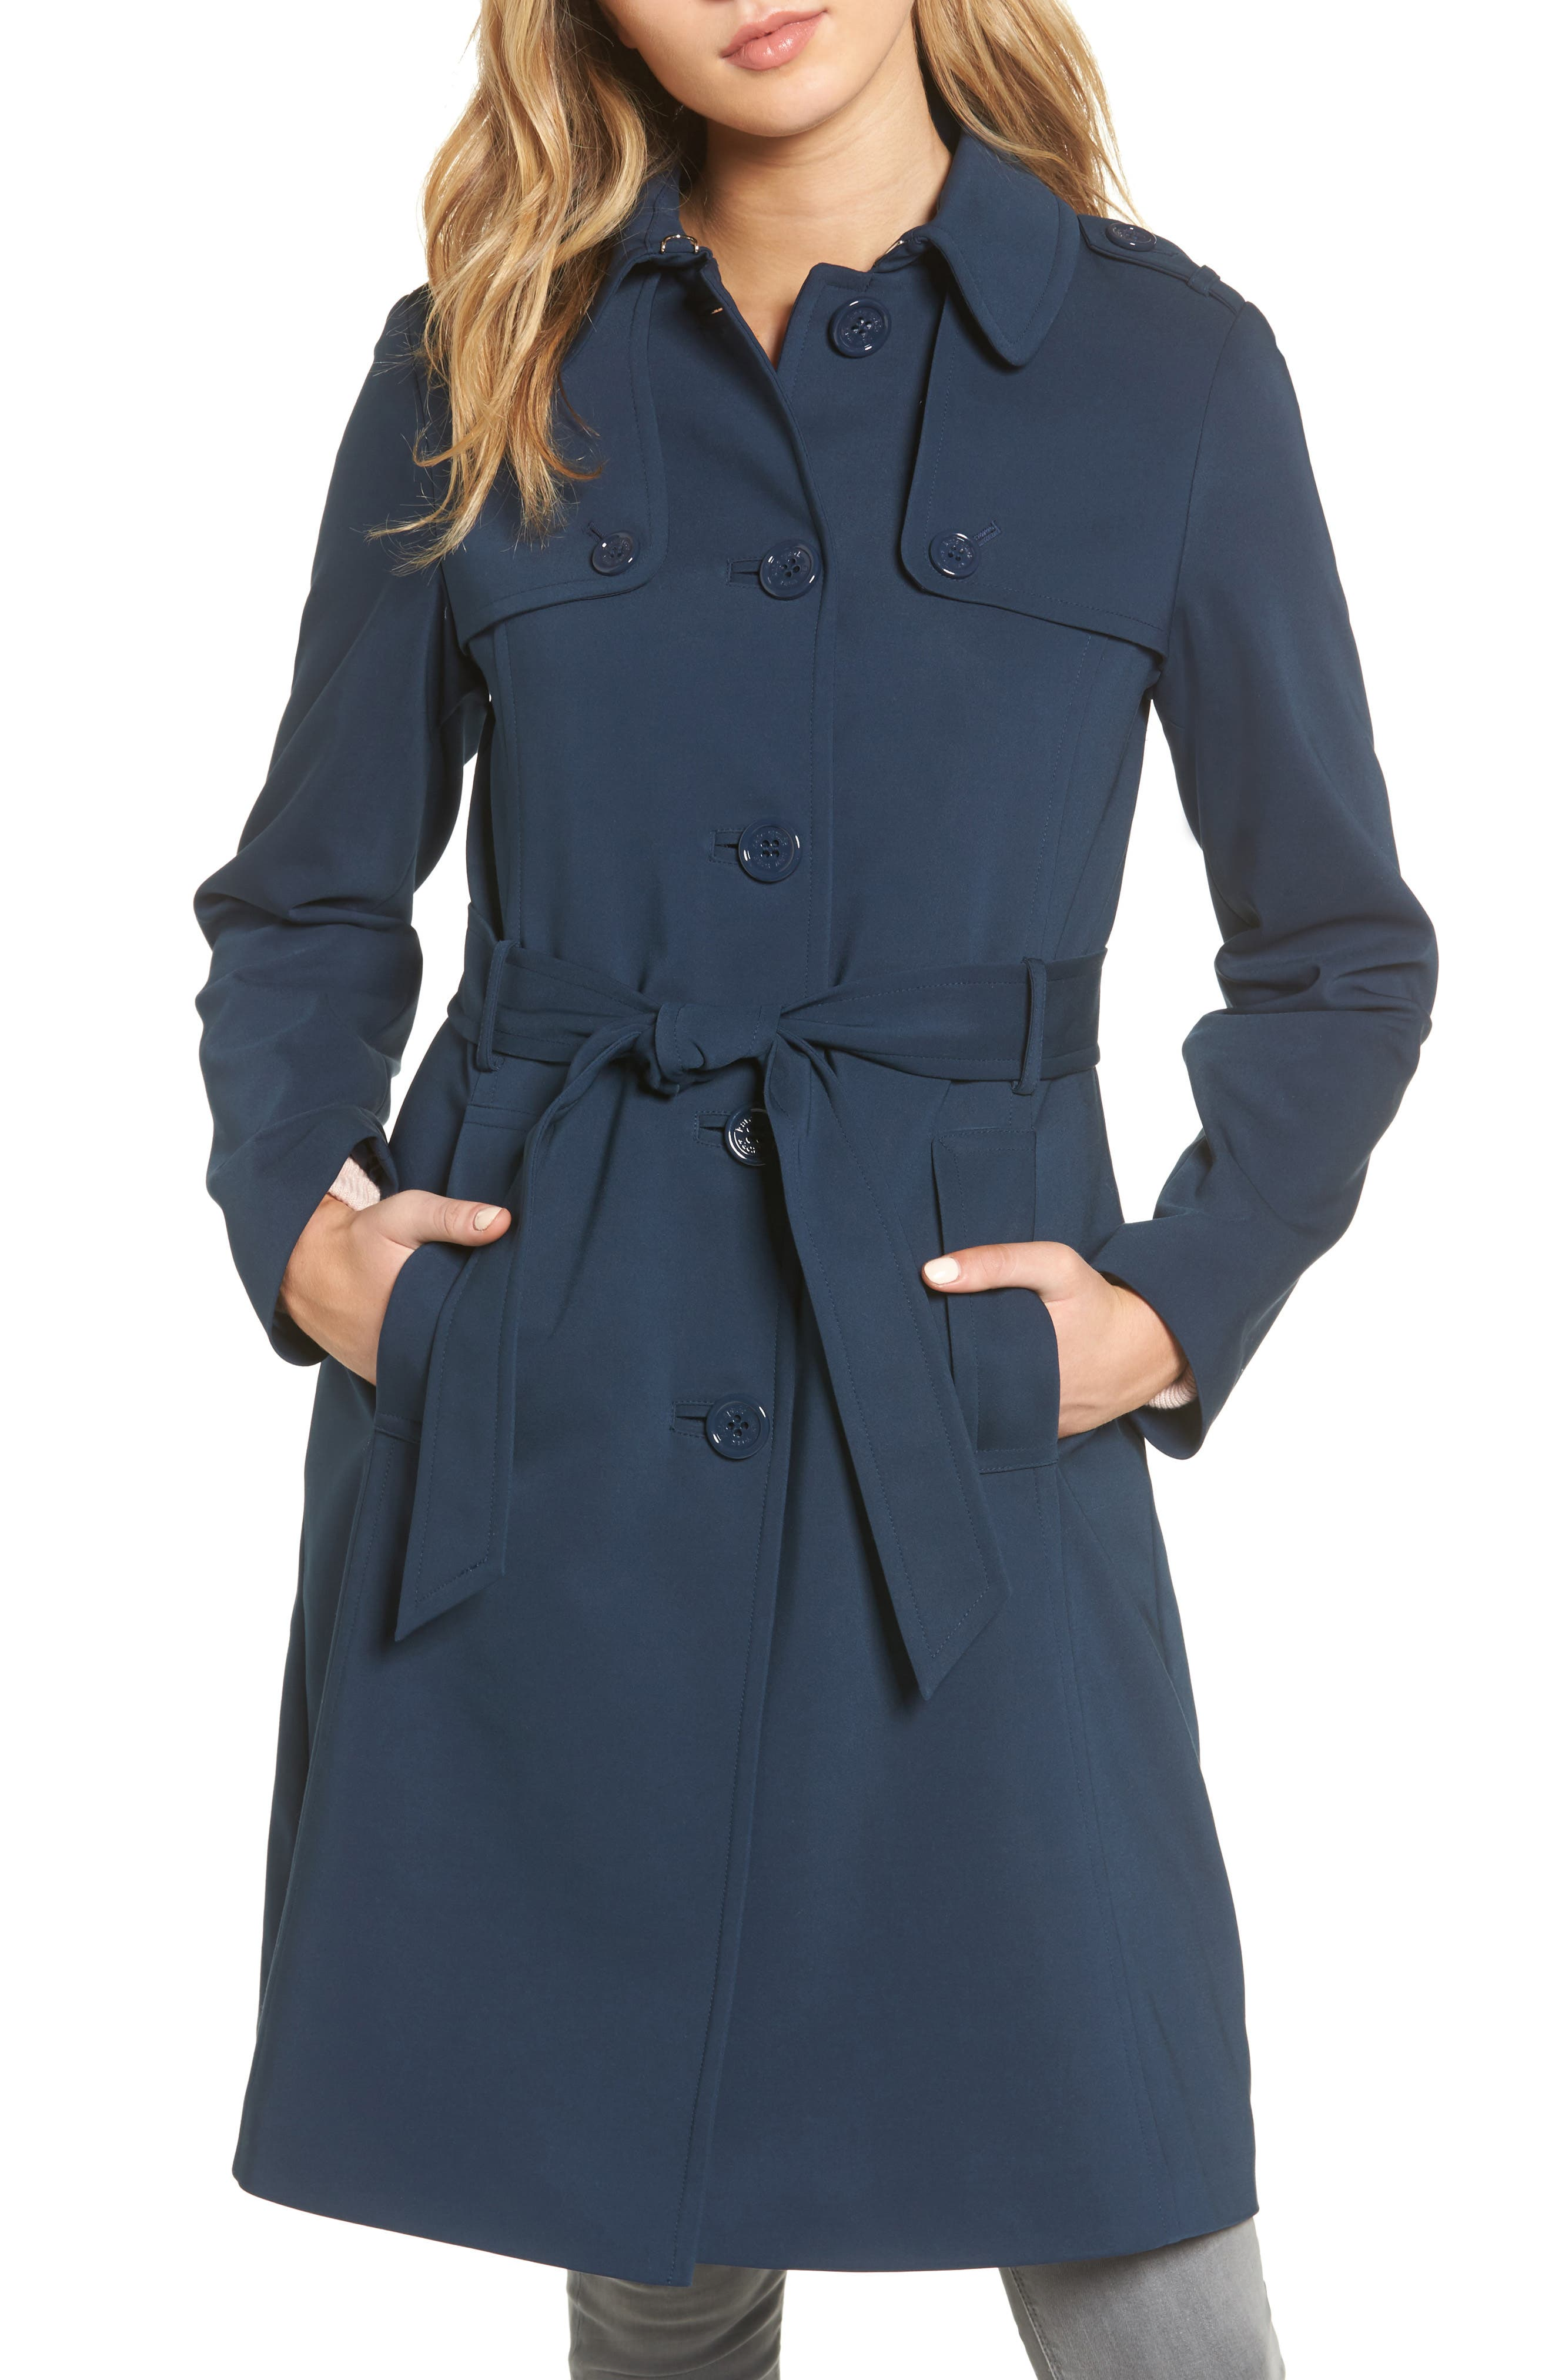 3-in-1 trench coat,                         Main,                         color, Rich Navy